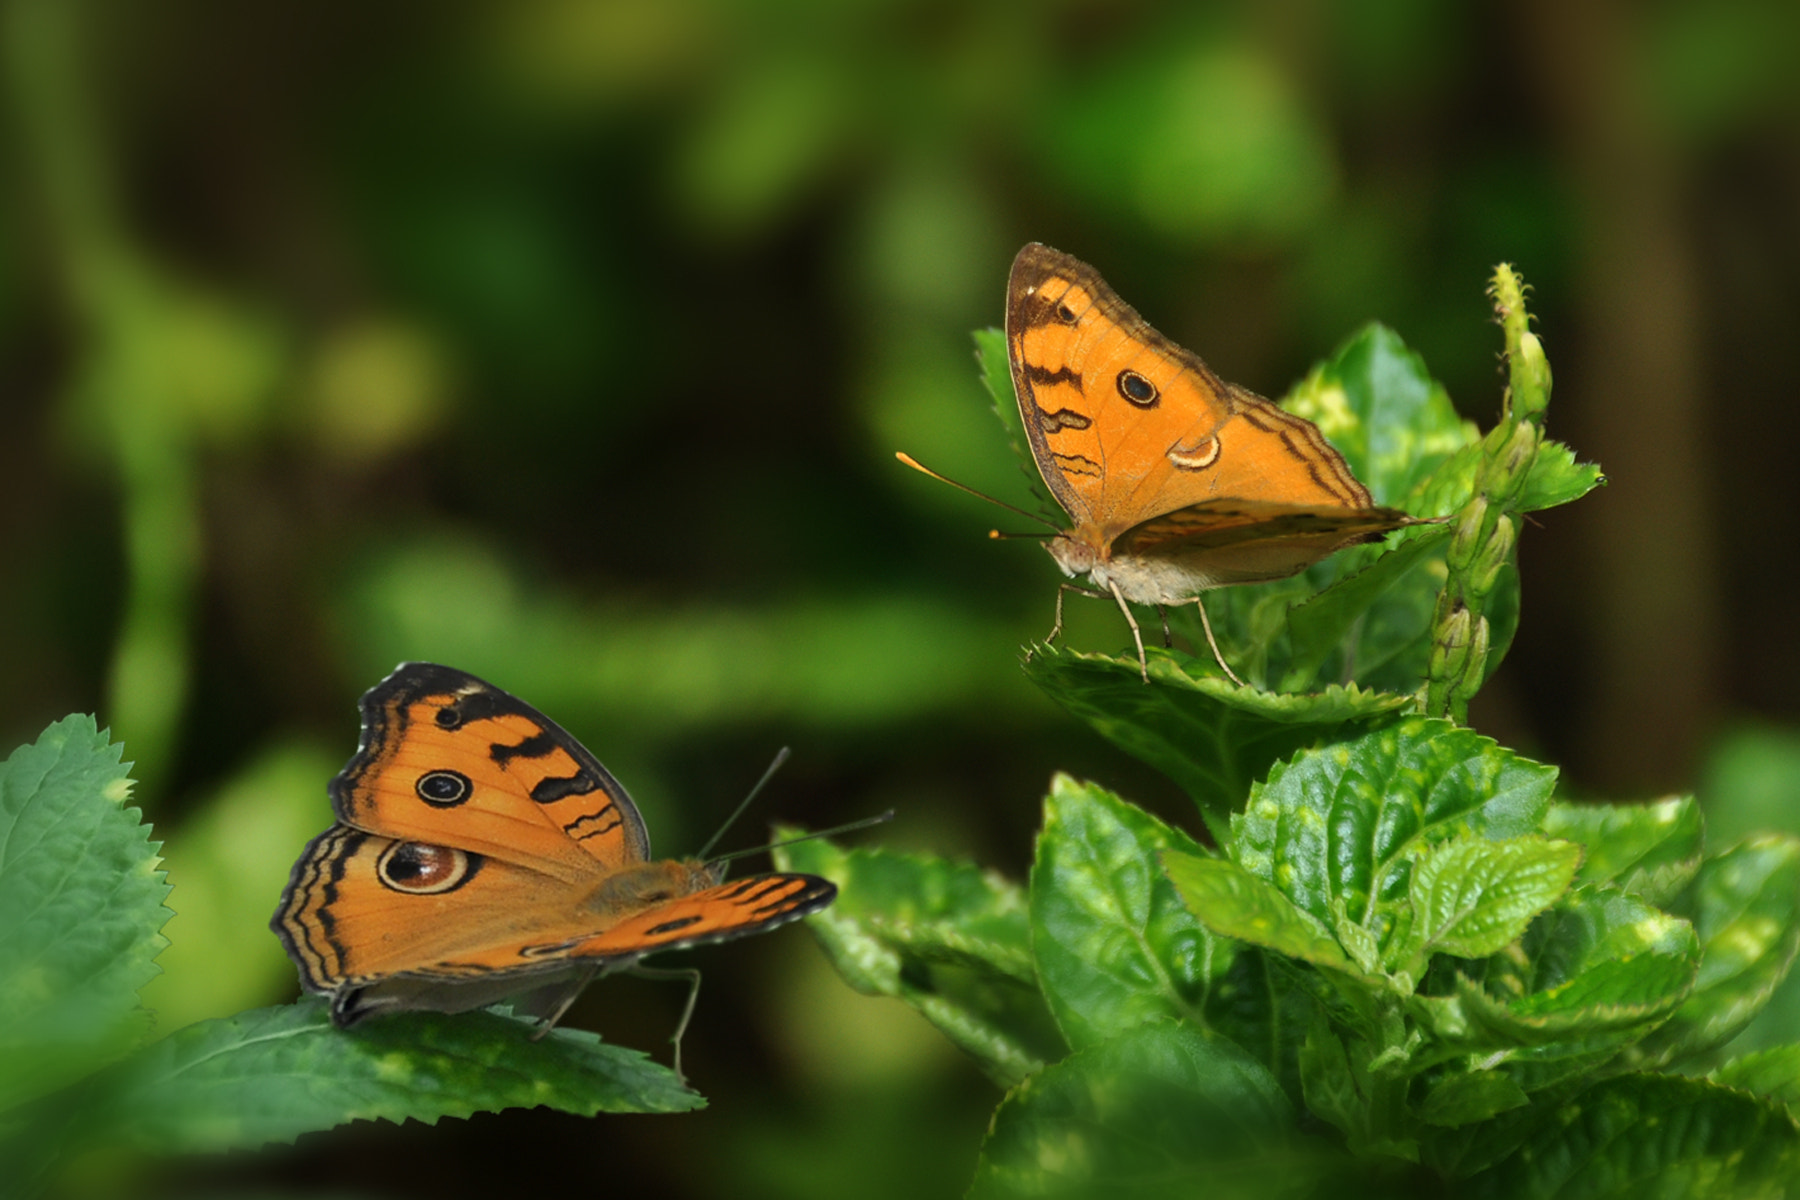 Photograph Butterflies Chatting by Khoo Boo Chuan on 500px